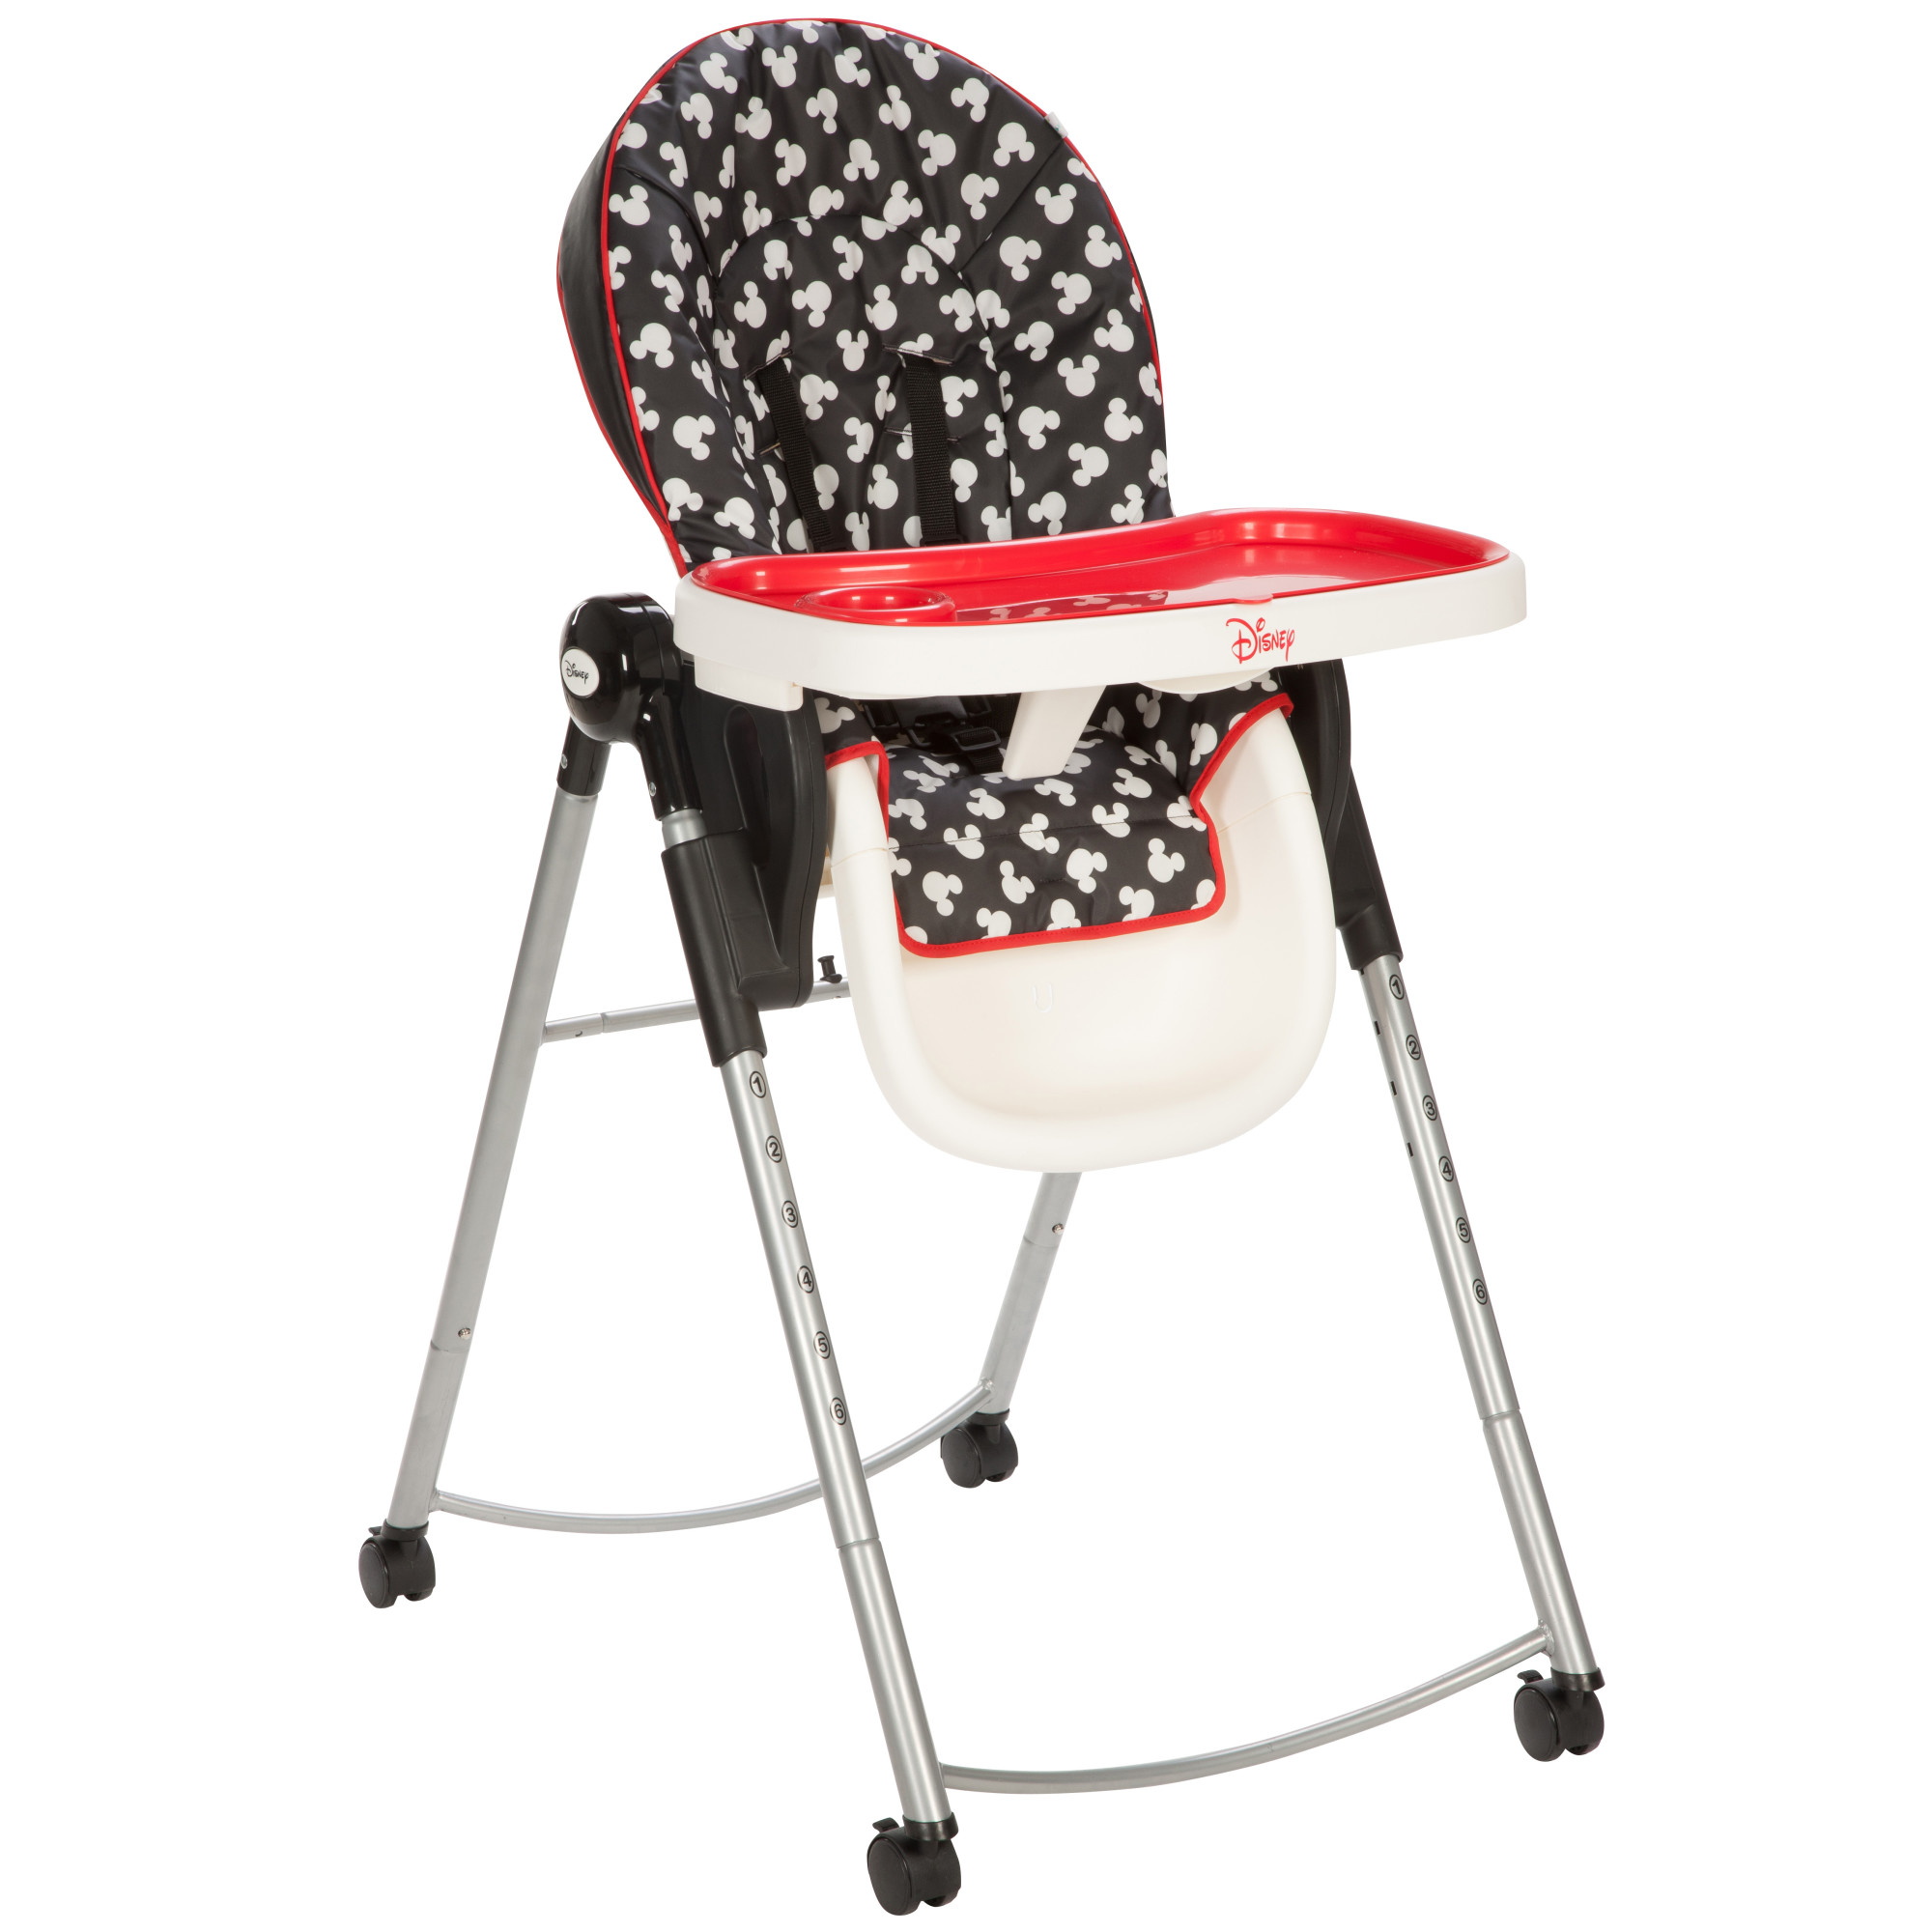 High Chair Deals Baby High Chairs Coupon Codes Discount Deals May Children